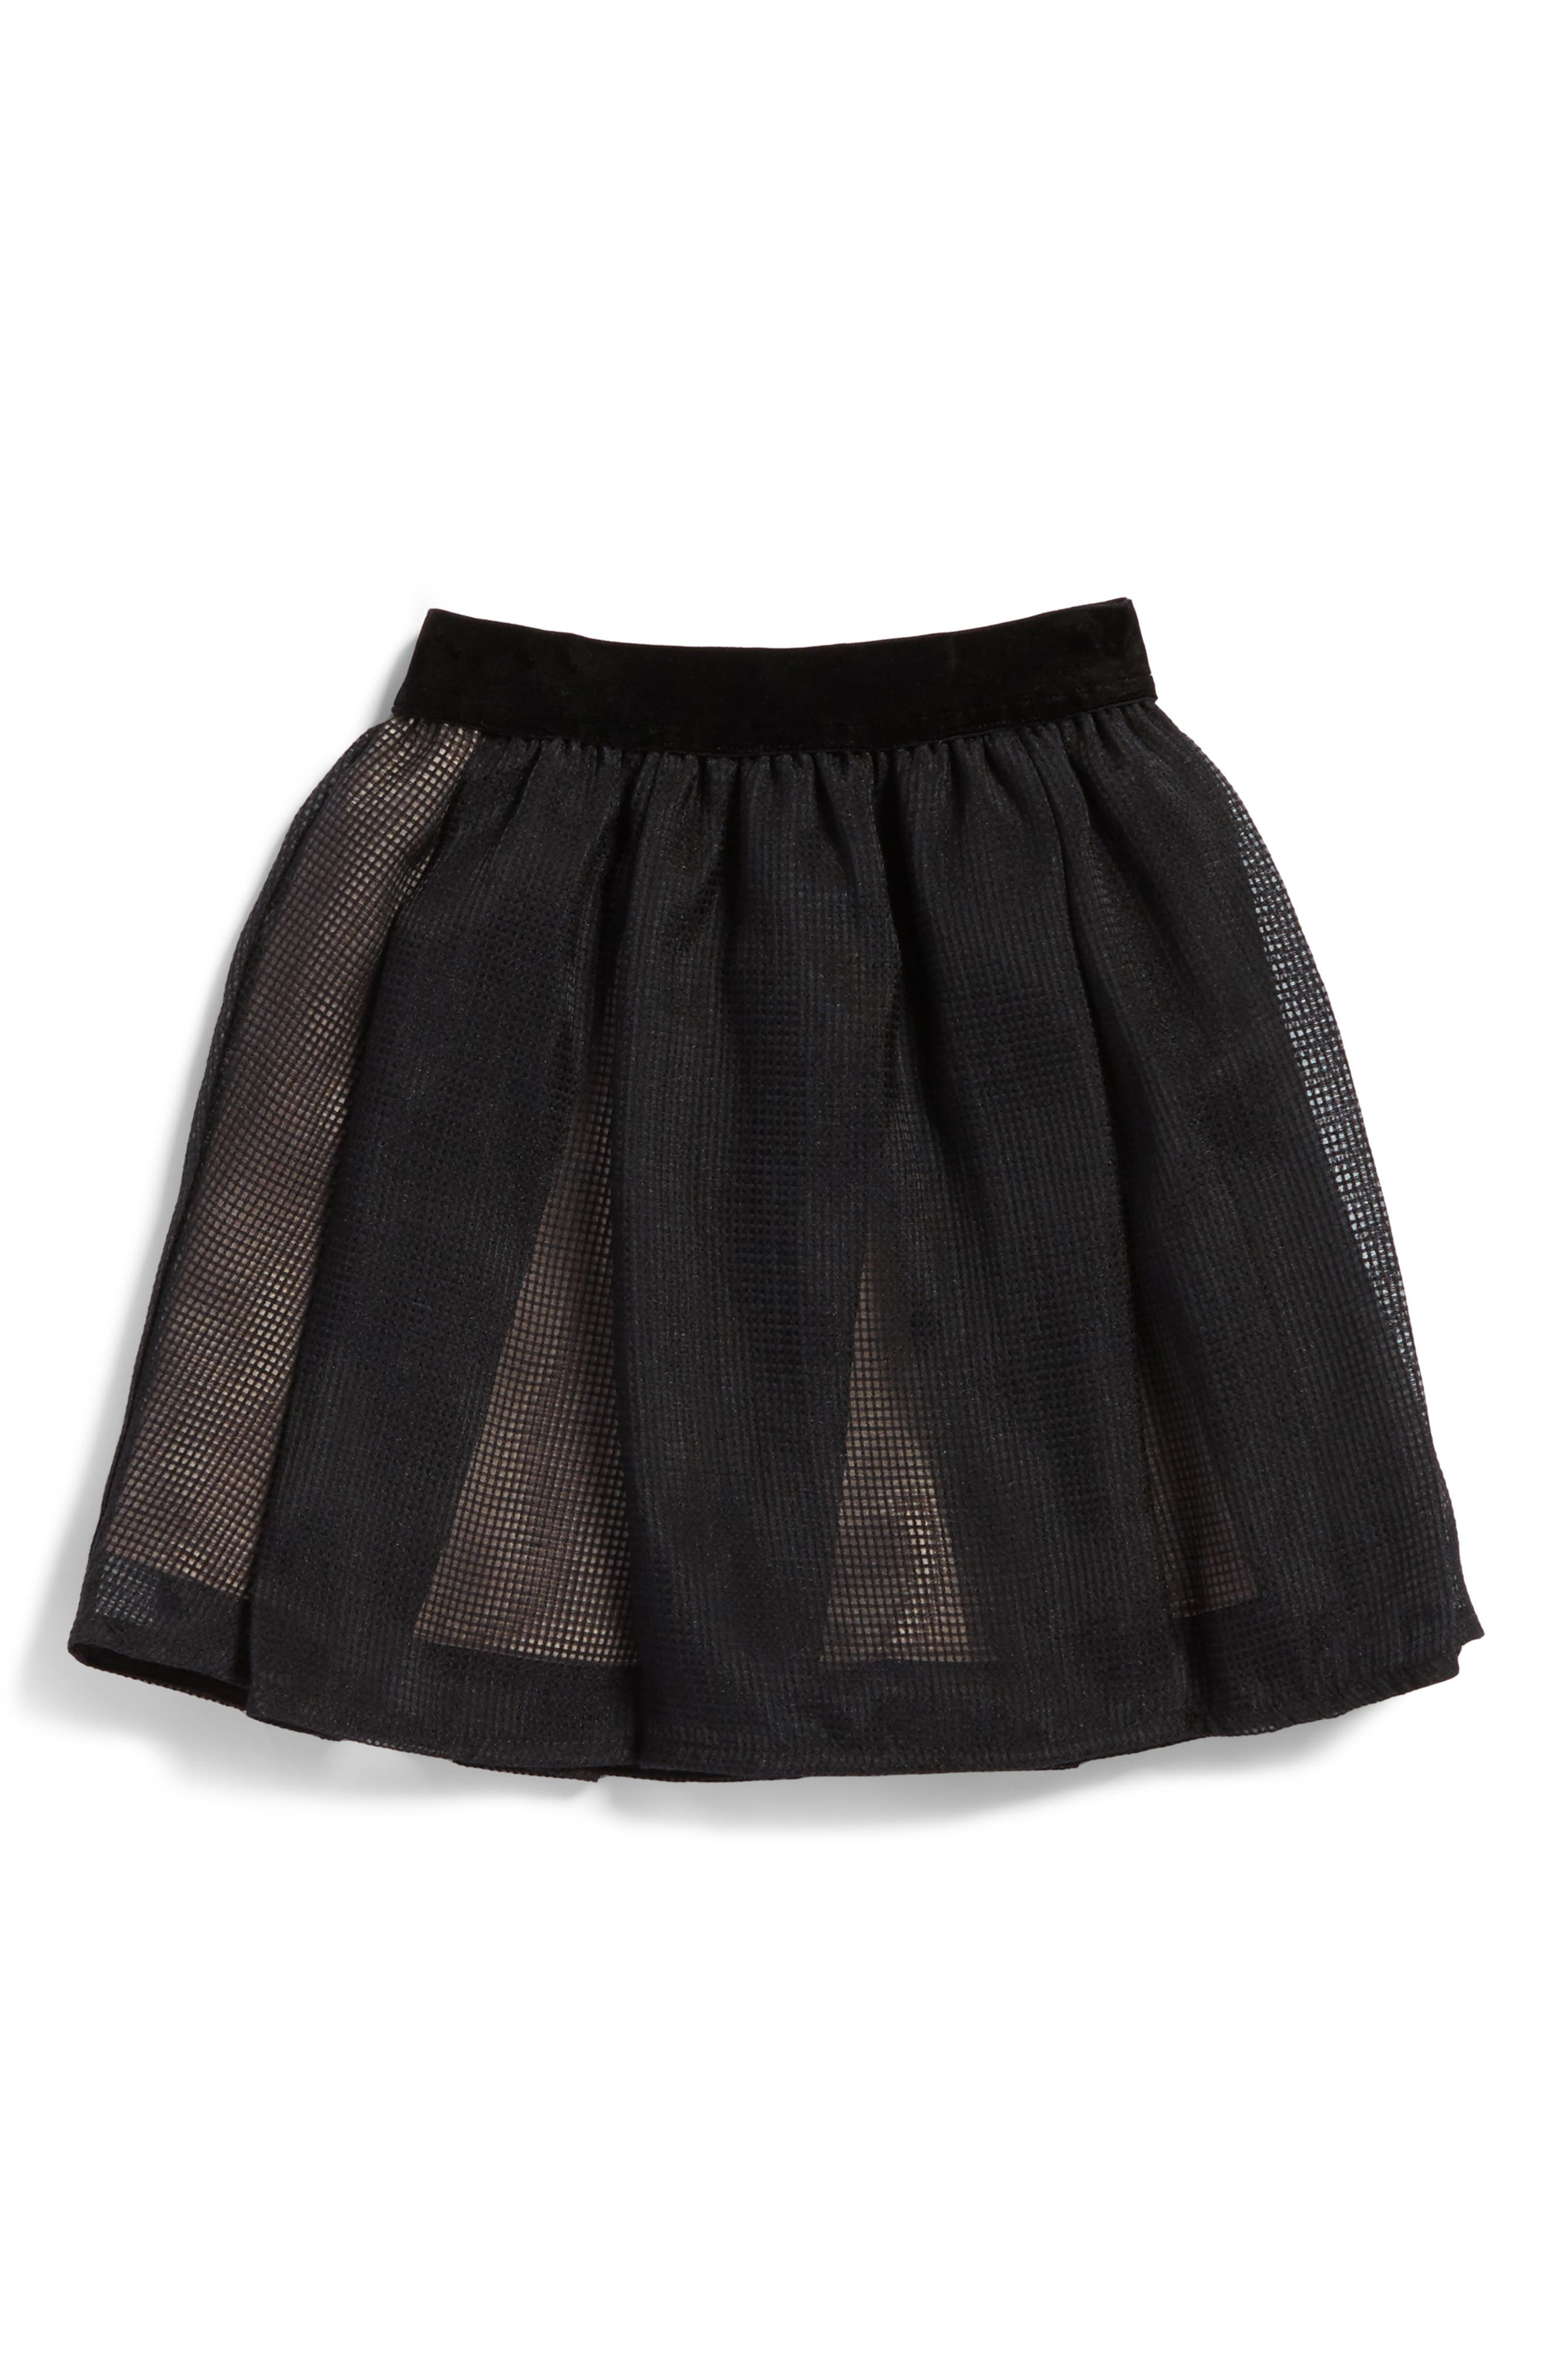 Blaire Mesh Skirt,                         Main,                         color, 001